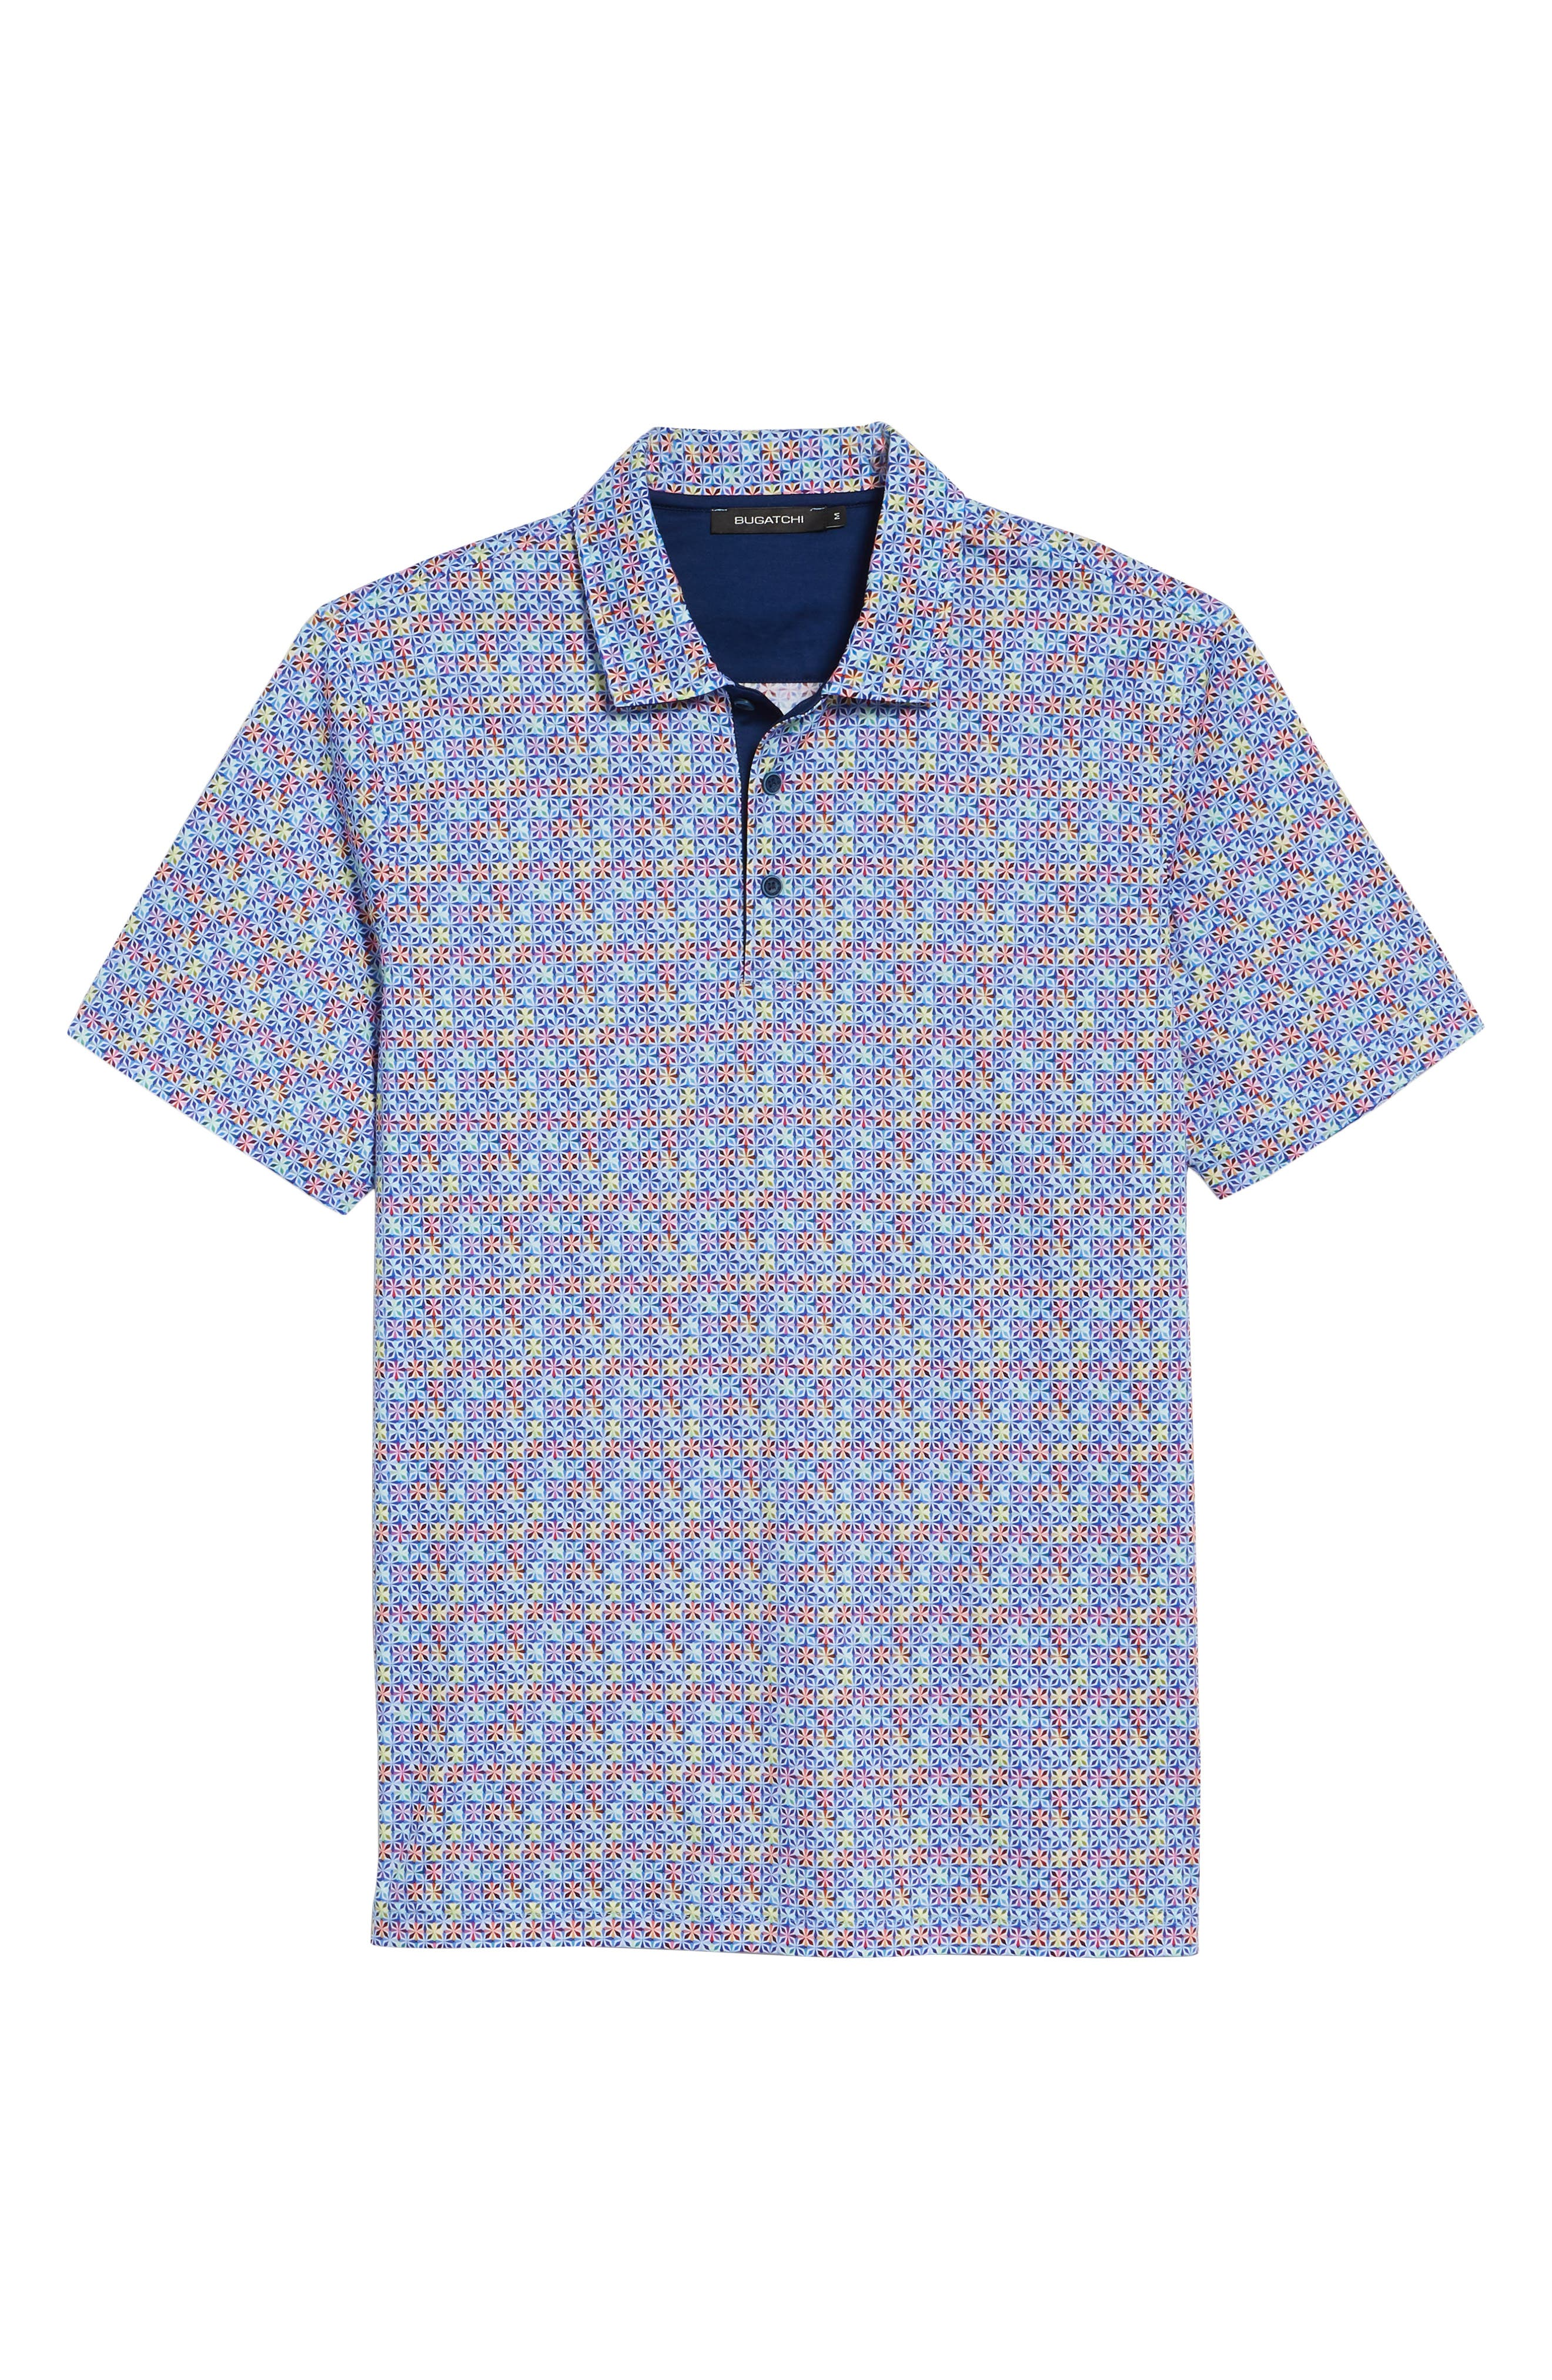 Regular Fit Knit Polo,                             Alternate thumbnail 6, color,                             CANDY